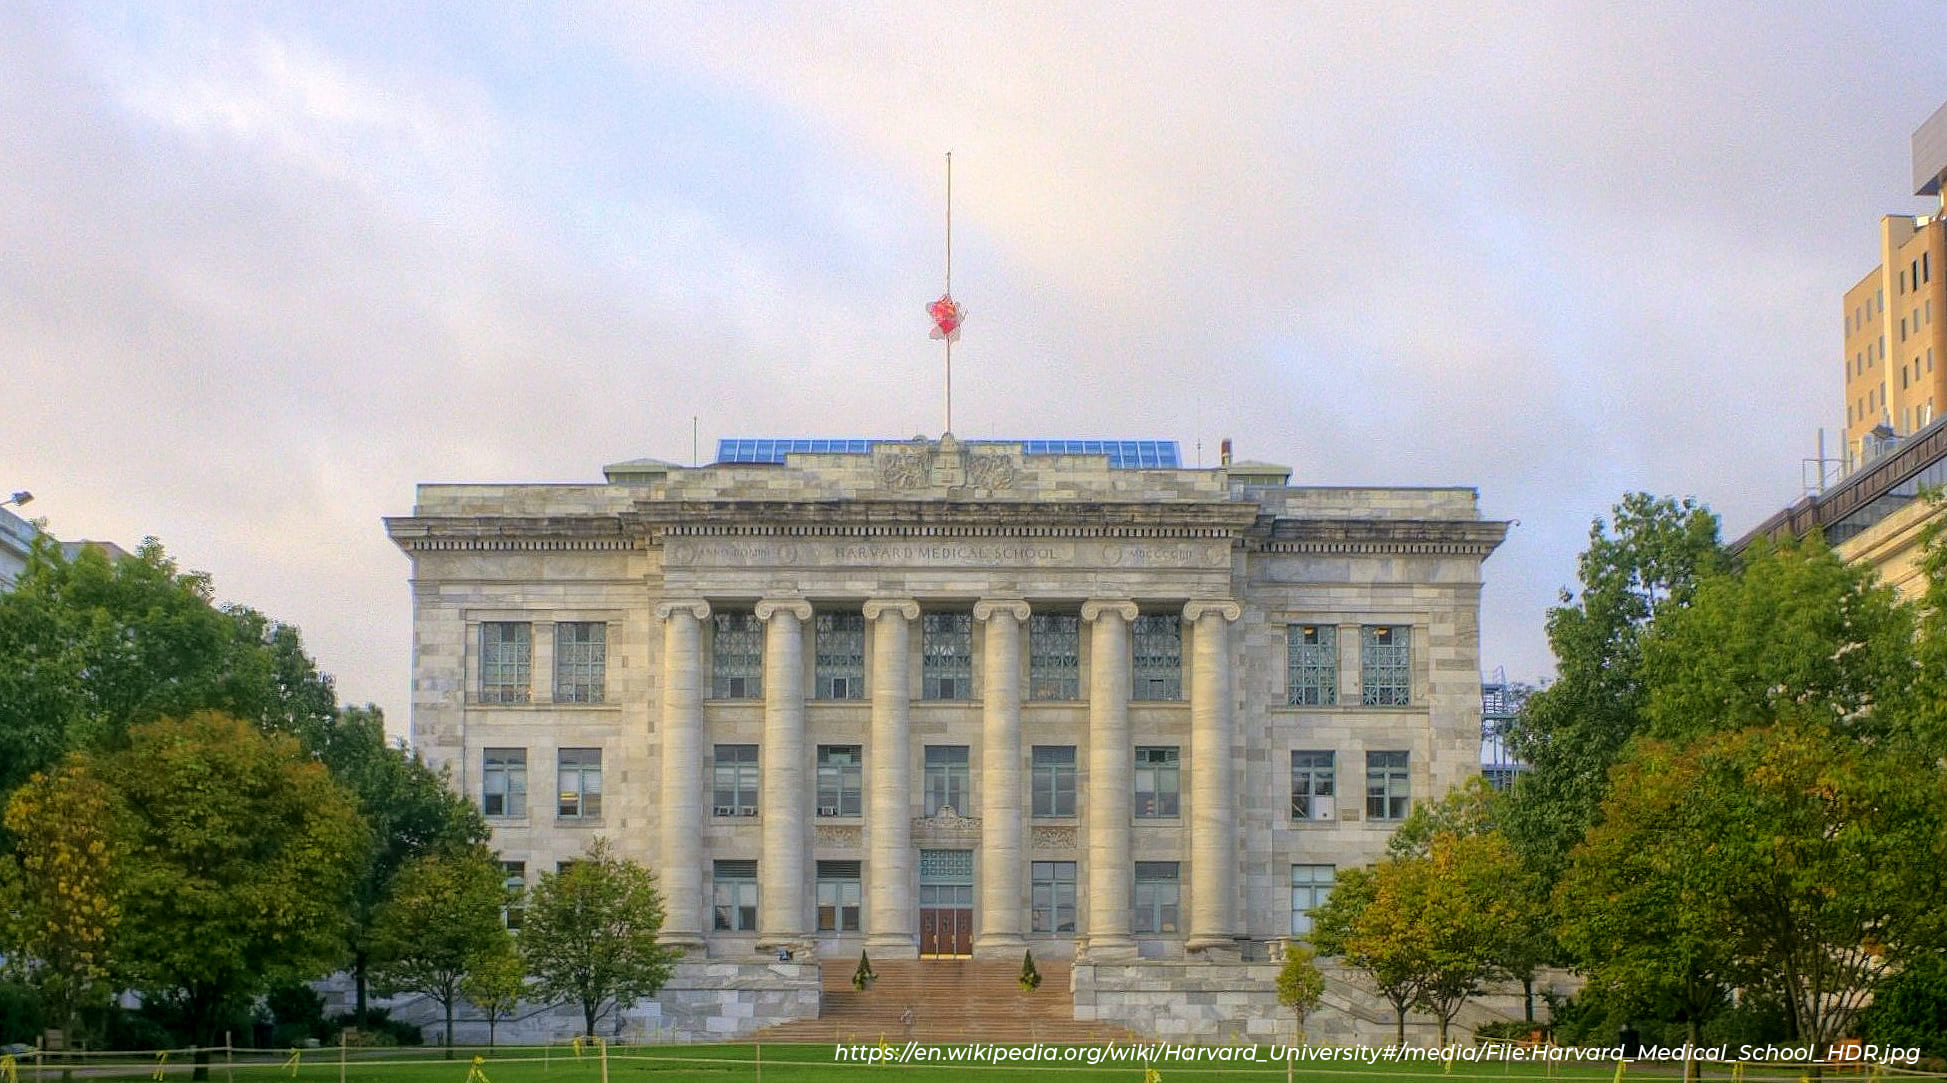 Harvard Medical School building exterior